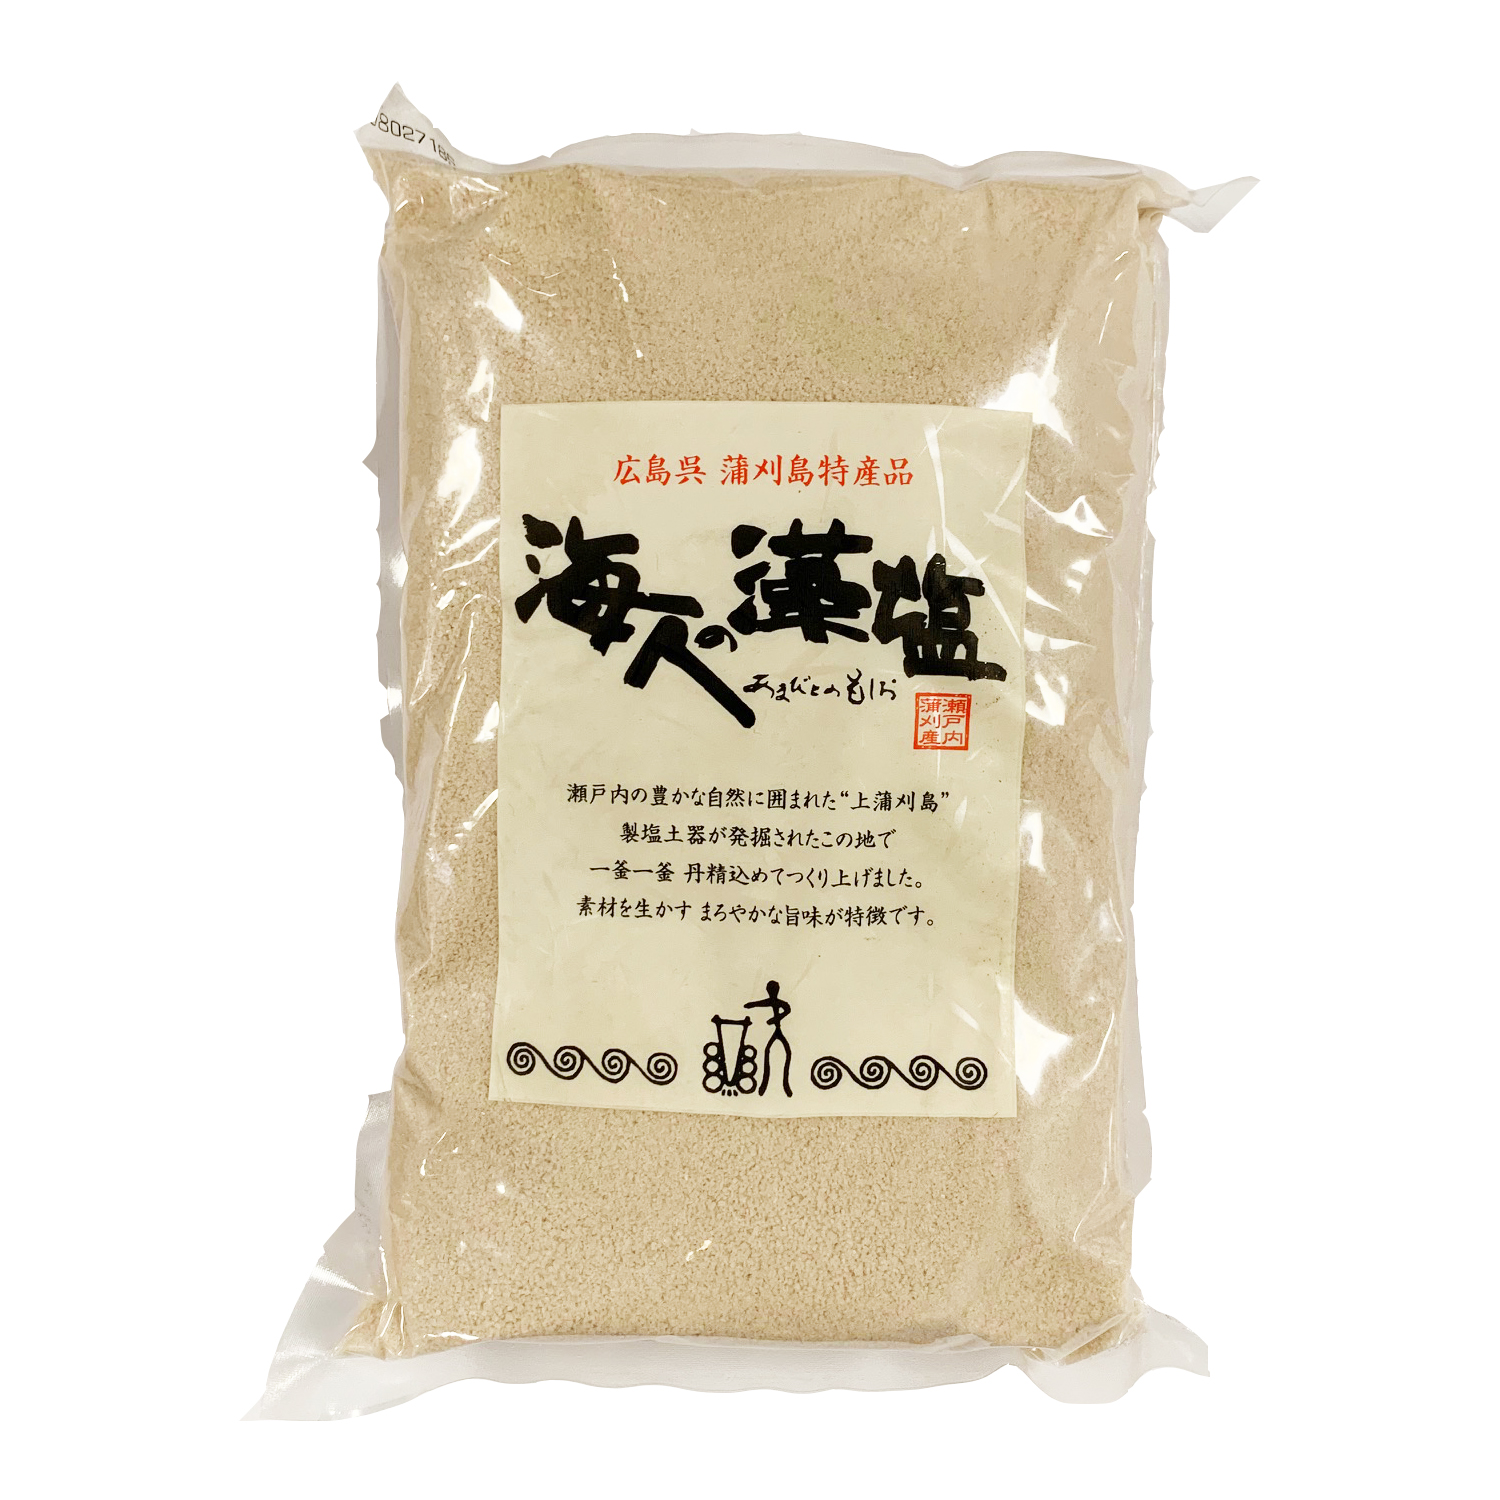 Amabito No Moshio 1000g Bag